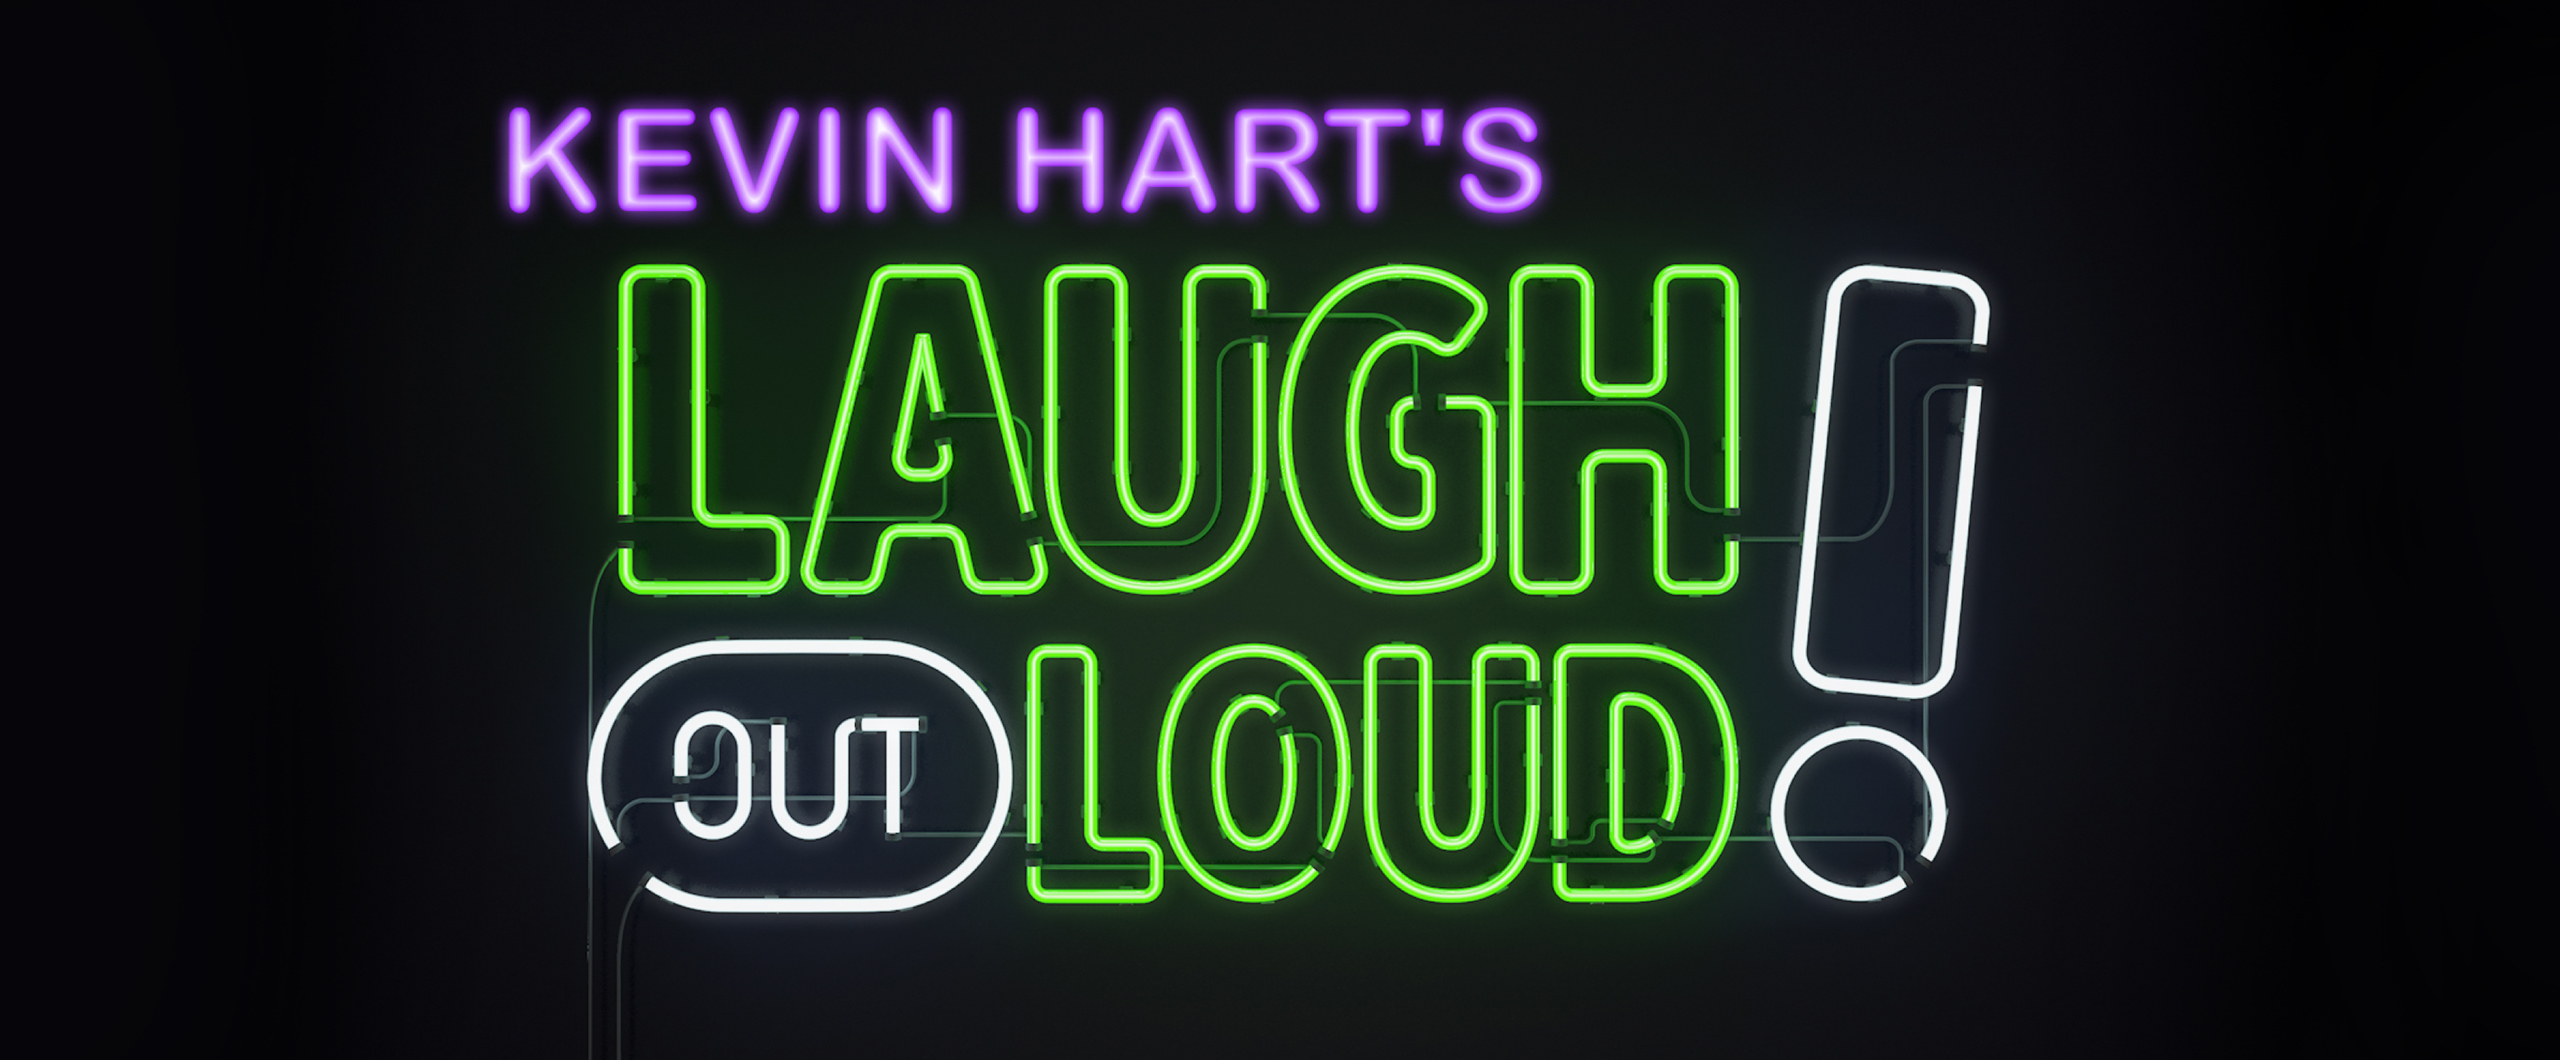 Kevin Hart's Laugh Out Loud